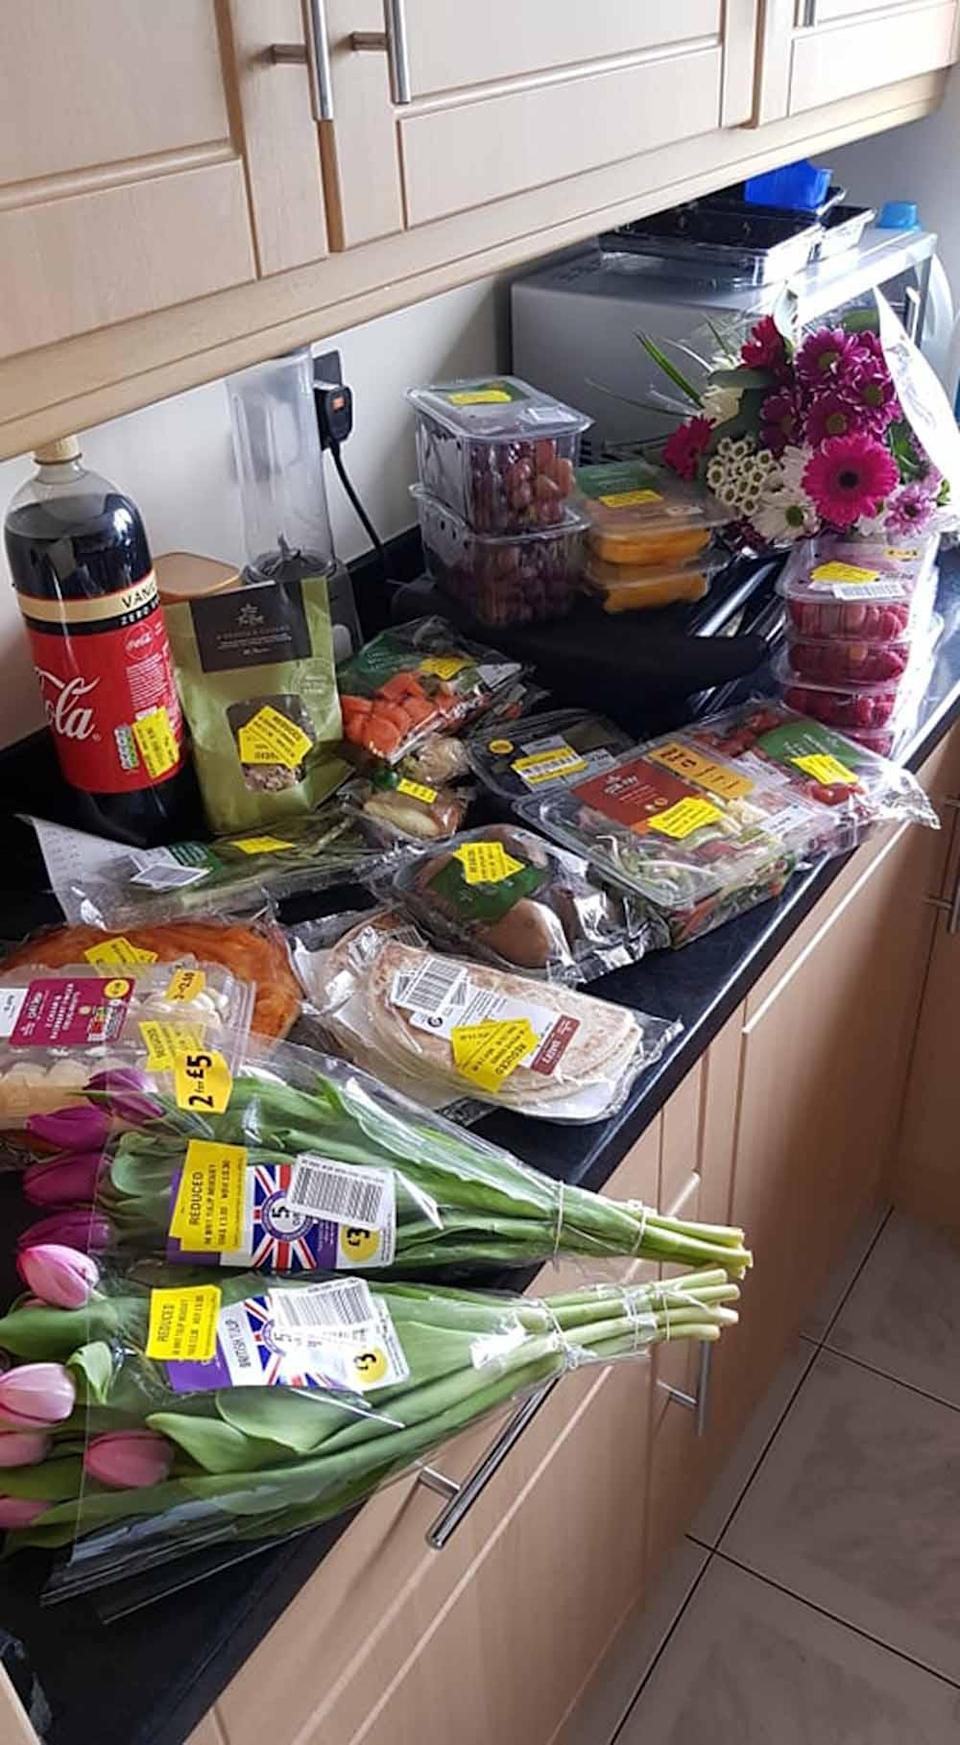 Reduced flowers, fruit and baked goods. PA REAL LIFE COLLECT